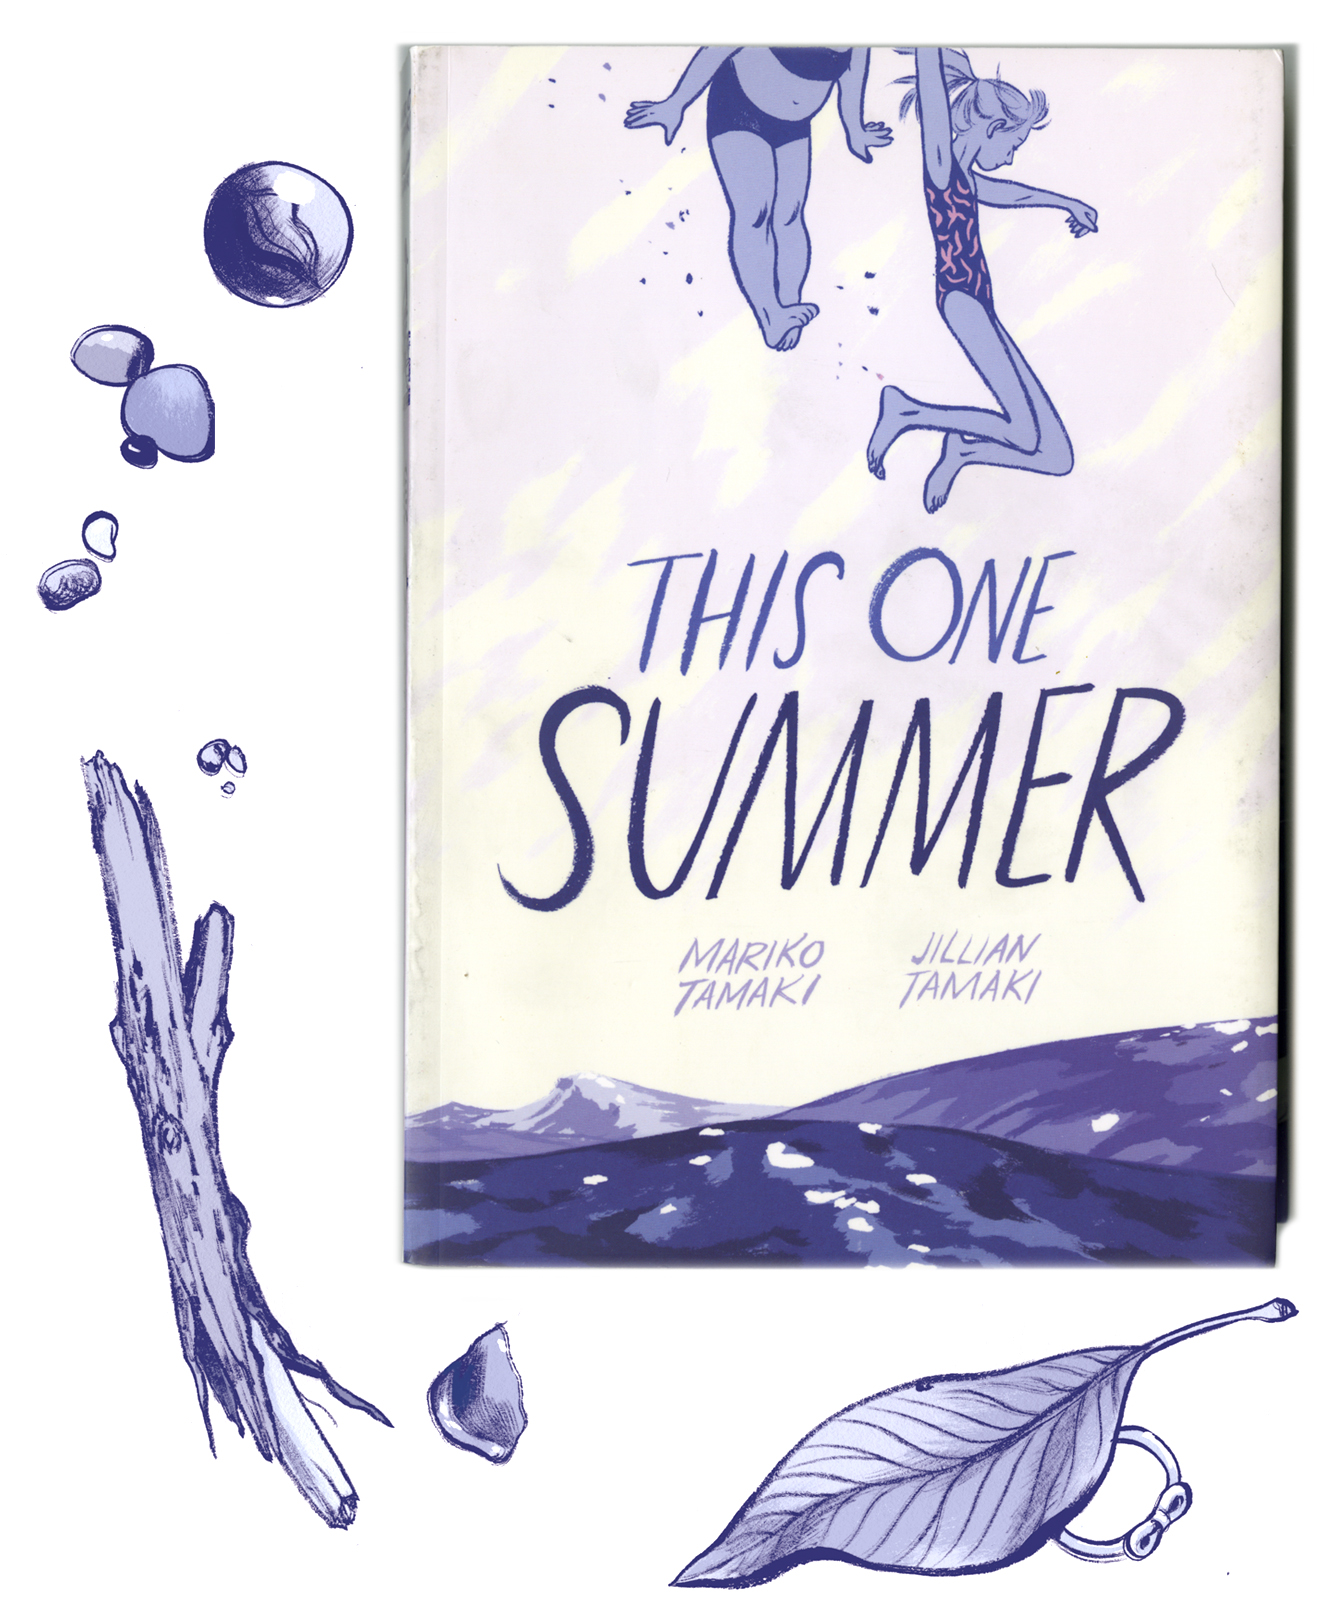 """This One Summer - First Second (US), Groundwood Books (CAN), 2014co-created with Mariko Tamaki320 pages, Ages 13+Rose and Windy are summer friends whose families have visited Awago Beach for as long as they can remember. But this year is different, and they soon find themselves tangled in teen love and family crisis. From the creators of Skim comes an investigation into the mysterious world of adults.Sure, Rose's dad is still making cheesy and embarrassing jokes, but her mother is acting like she doesn't even want to be there. Plus, being at the cottage isn't just about going to the beach anymore. Now Rose and Windy are spend a lot of their time renting scary movies and spying on the teenagers who work at the corner store, as well as learning stuff about sex no one mentioned in health class.Pretty soon everything is messed up. Rose's father leaves the cottage and returns to the city, and her mother becomes more and more withdrawn. While her family is falling to pieces, Rose focuses her attention on Dunc, a teenager working at the local corner store. When Jenny, Dunc's girlfriend, claims to be pregnant, the girls realize that the teenagers are keeping just as many secrets as the adults in their lives.""""This One Summer is a graphic novel for readers who appreciate the form, as well as for fans of traditionally told coming-of-age stories. If I worked at a bookstore, I'd be hand-selling it to customers who adored Raina Telgemeier's graphic memoir """"Smile"""" but are now ready for more complex themes. Eagerly hand-selling it: This is a lovely book."""" –The New York Times Book Review"""